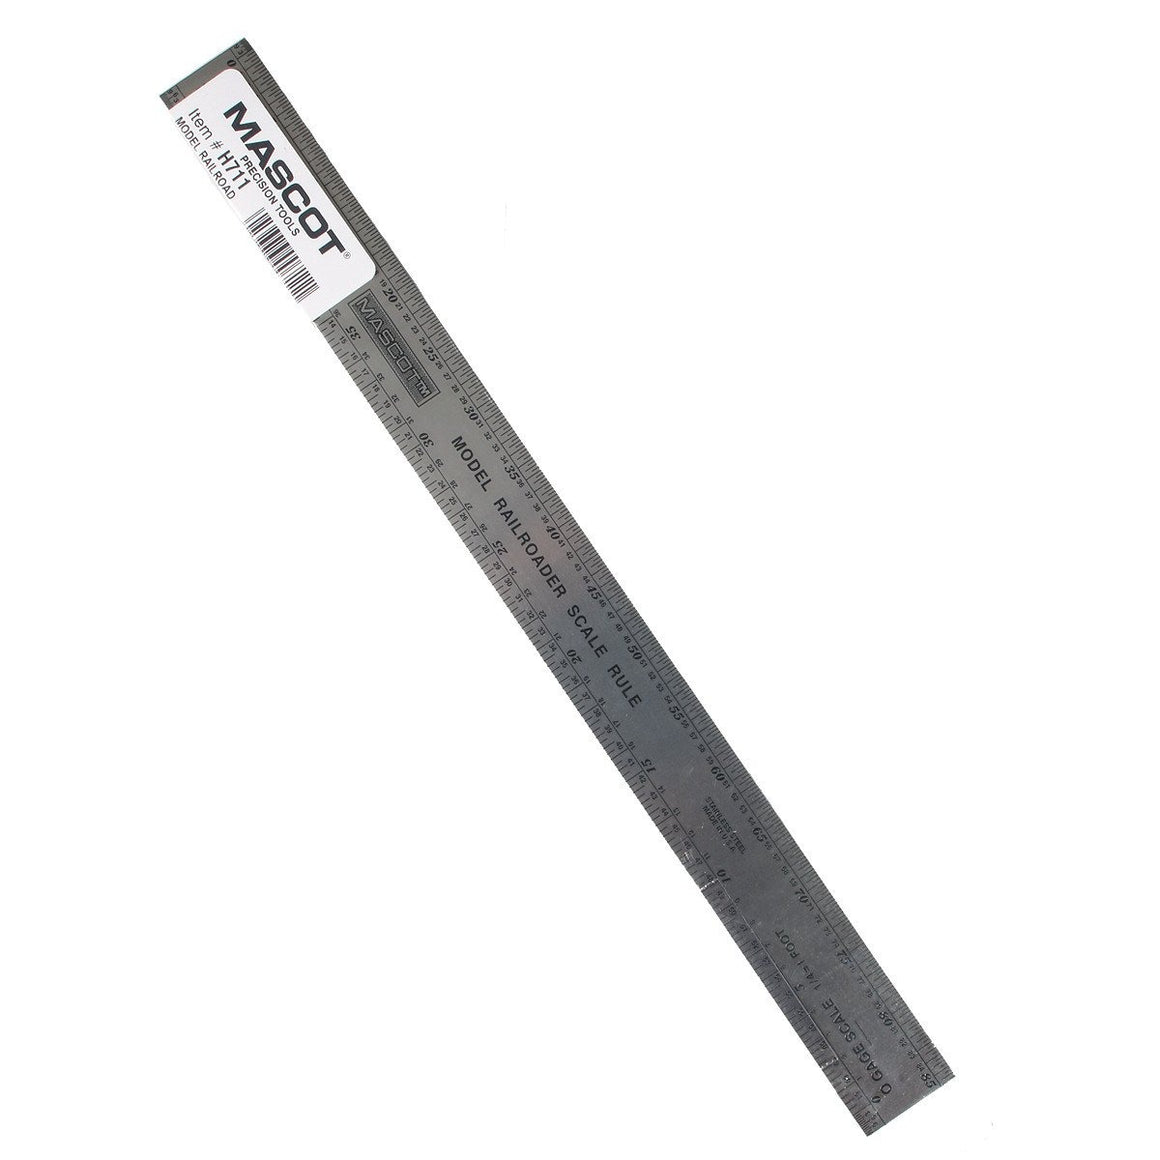 Model railroading scale ruler. MASCOT HO, N, S & O Scale Ruler